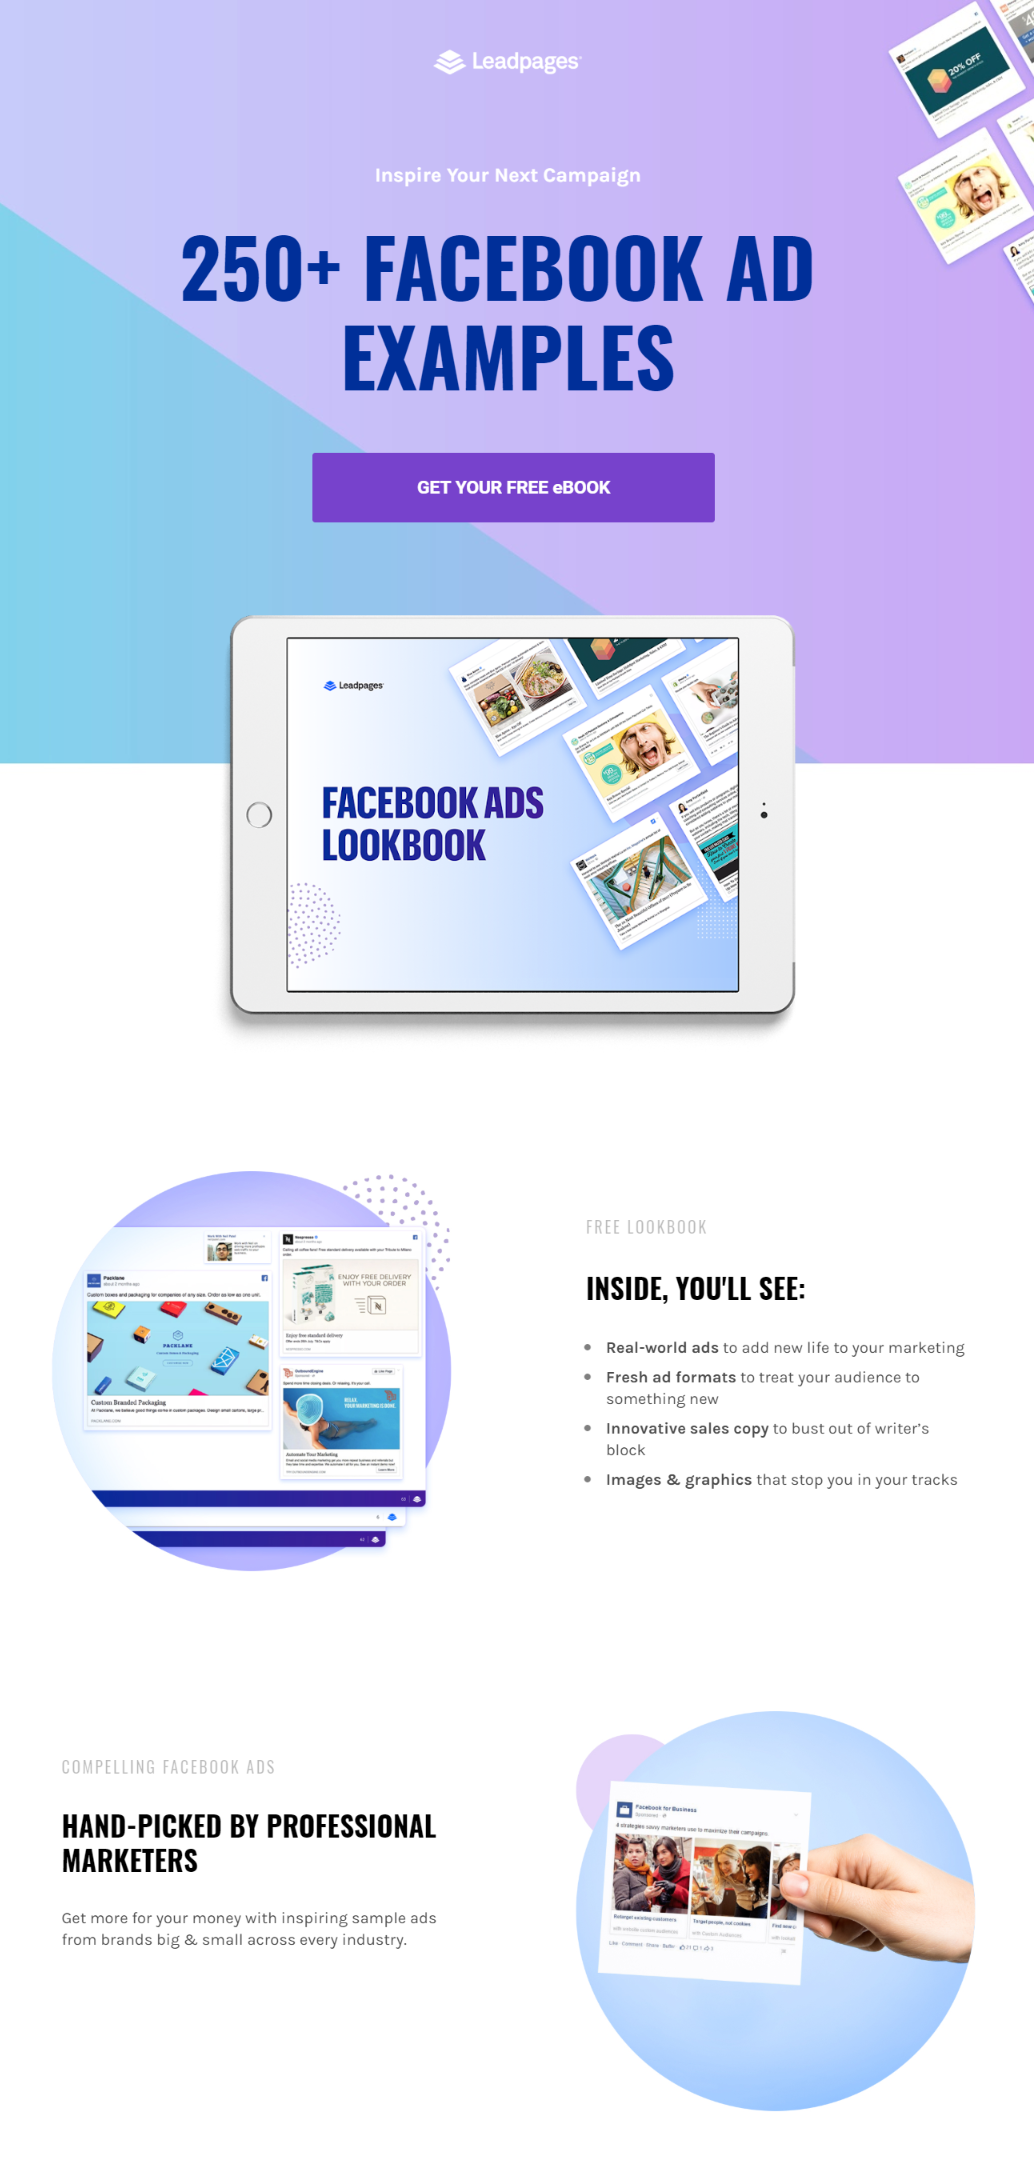 250+ FACEBOOK AD EXAMPLES HAND-PICKED BY PROFESSIONAL